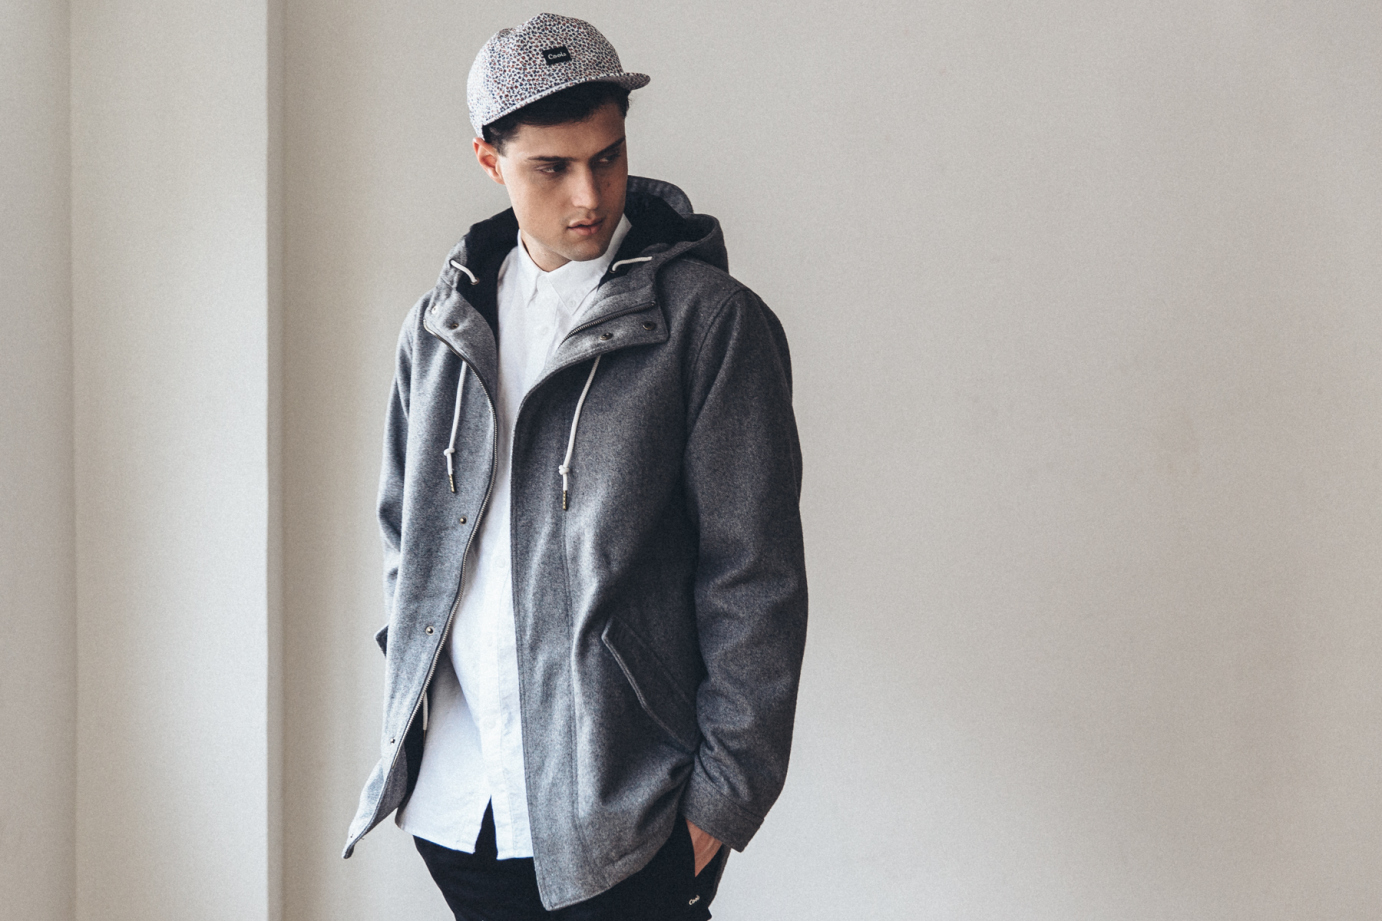 barney-cools-2015-fall-winter-collection-02.jpg